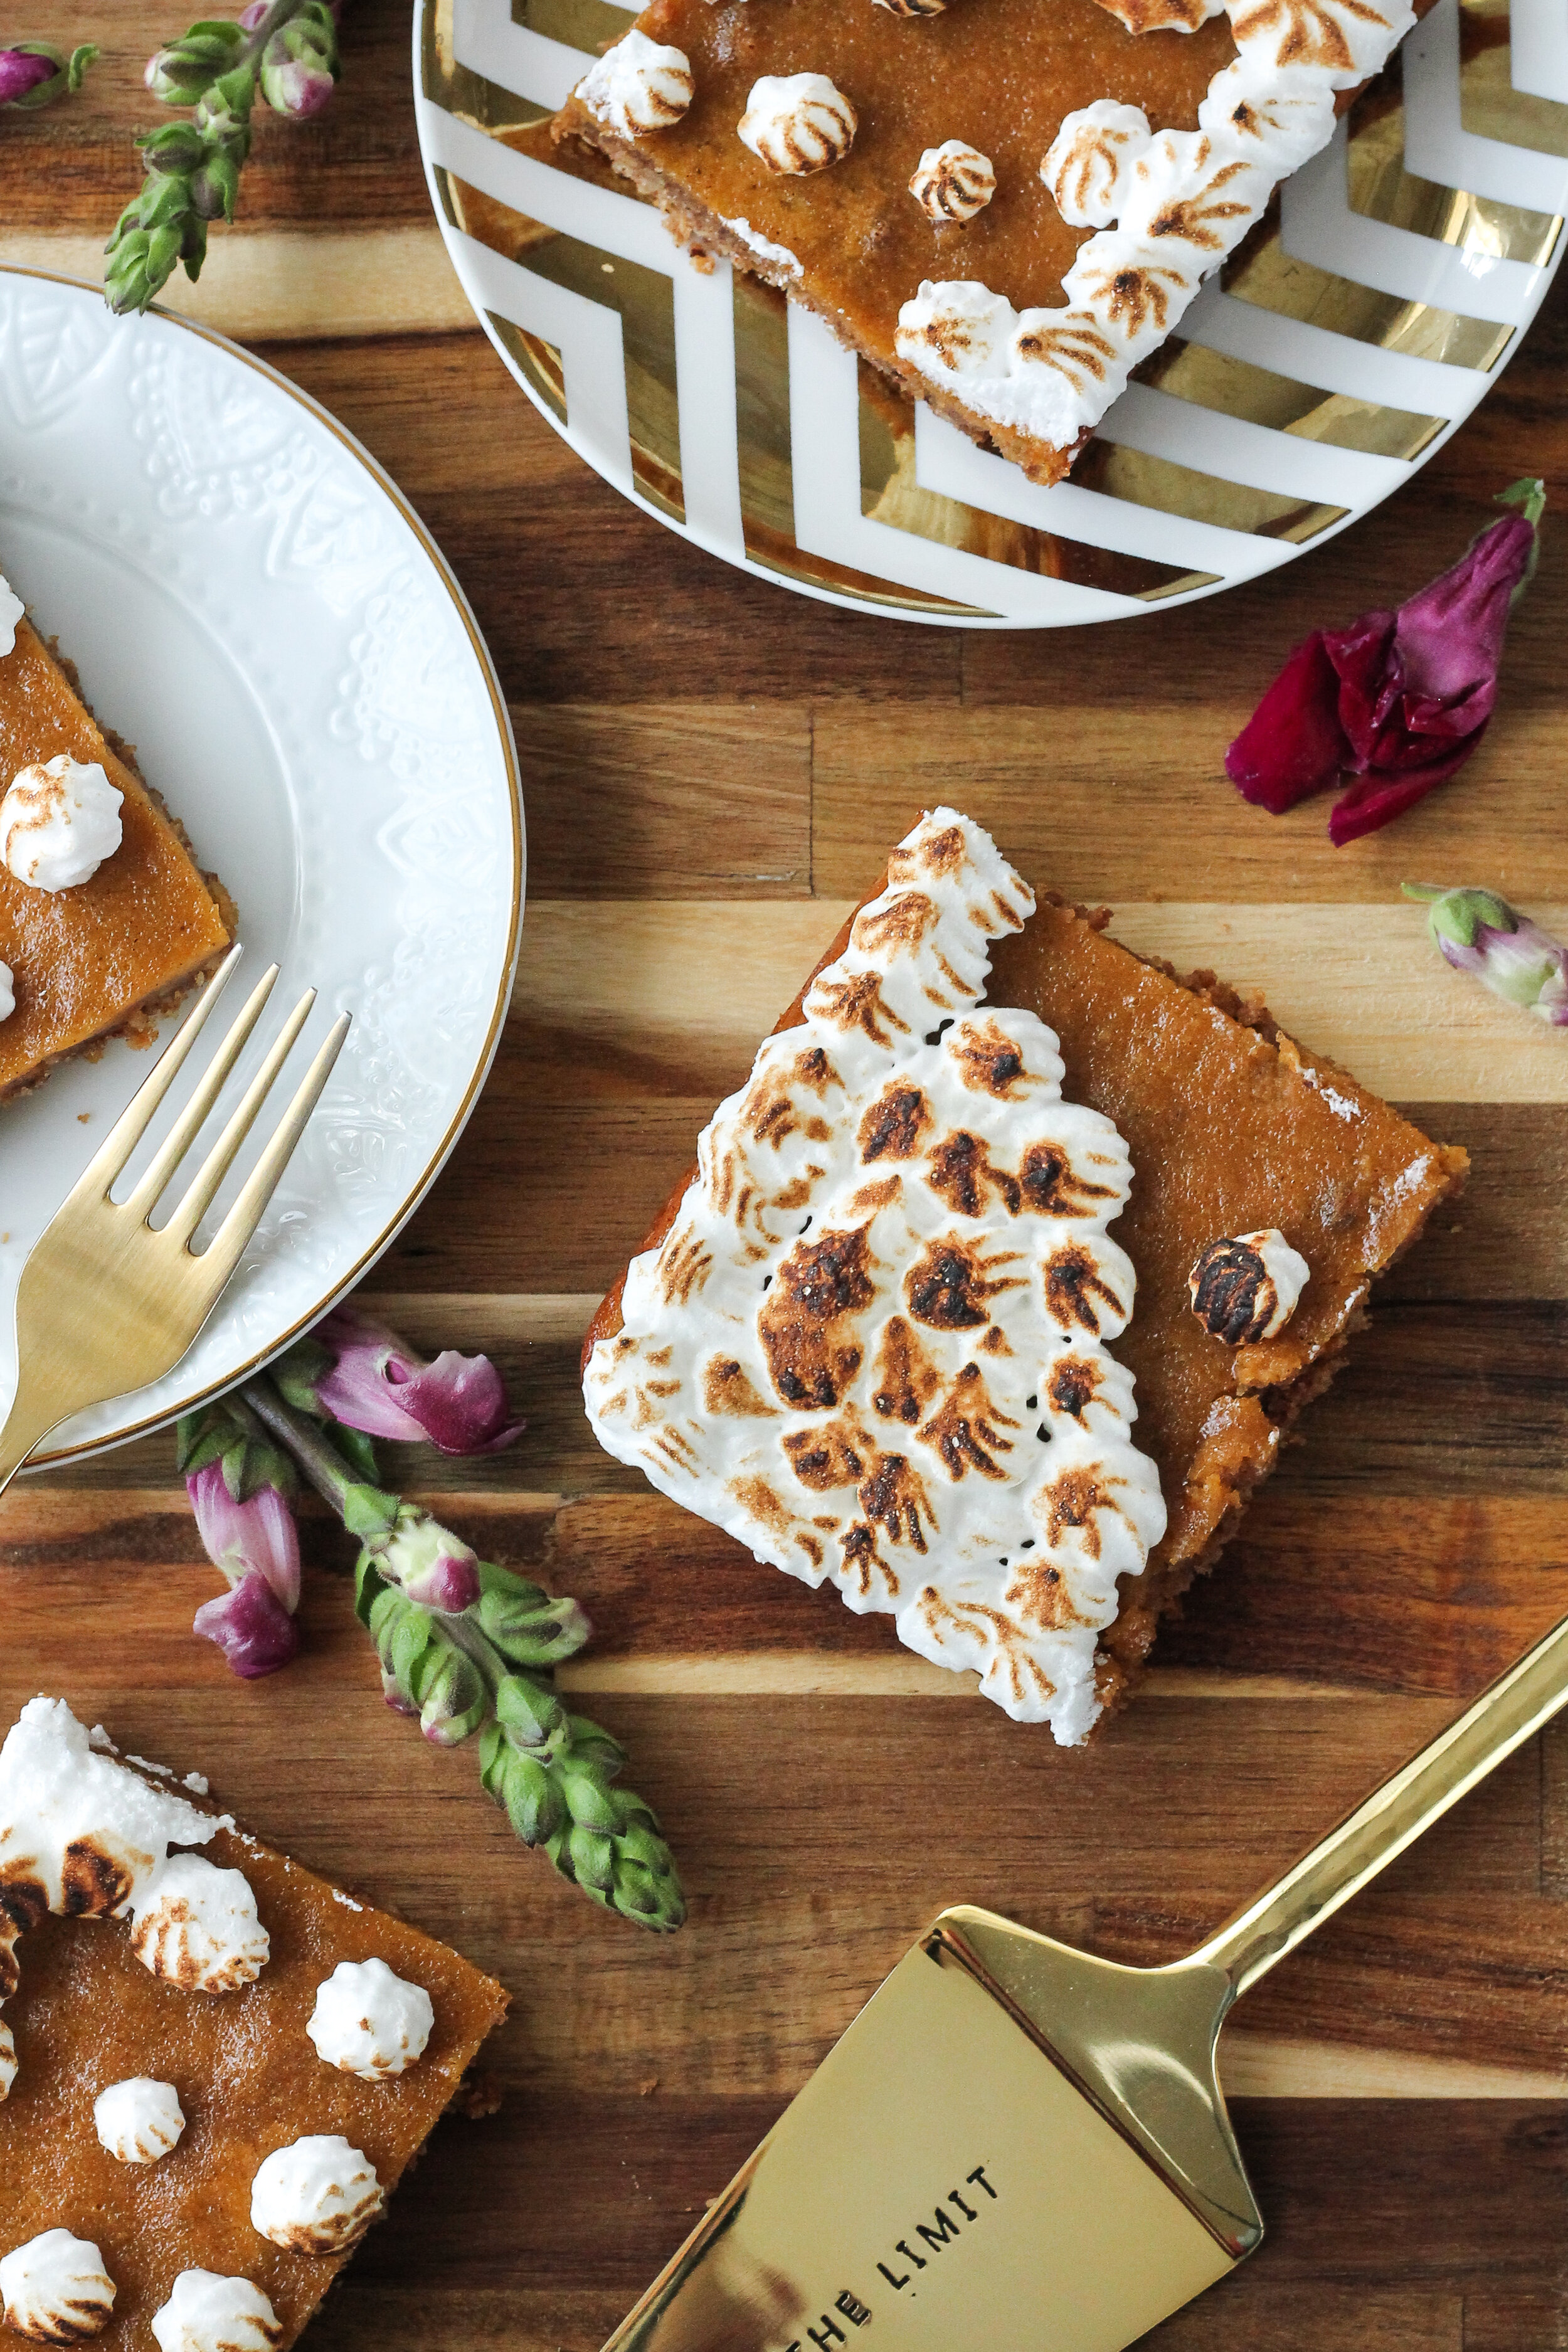 This Bourbon Sweet Potato Slab Pie features an irresistible, Gluten-Free Pretzel Pecan Crust and is the perfect treat for a crowd!  Find this recipe and so many more on www.pedanticfoodie.com!